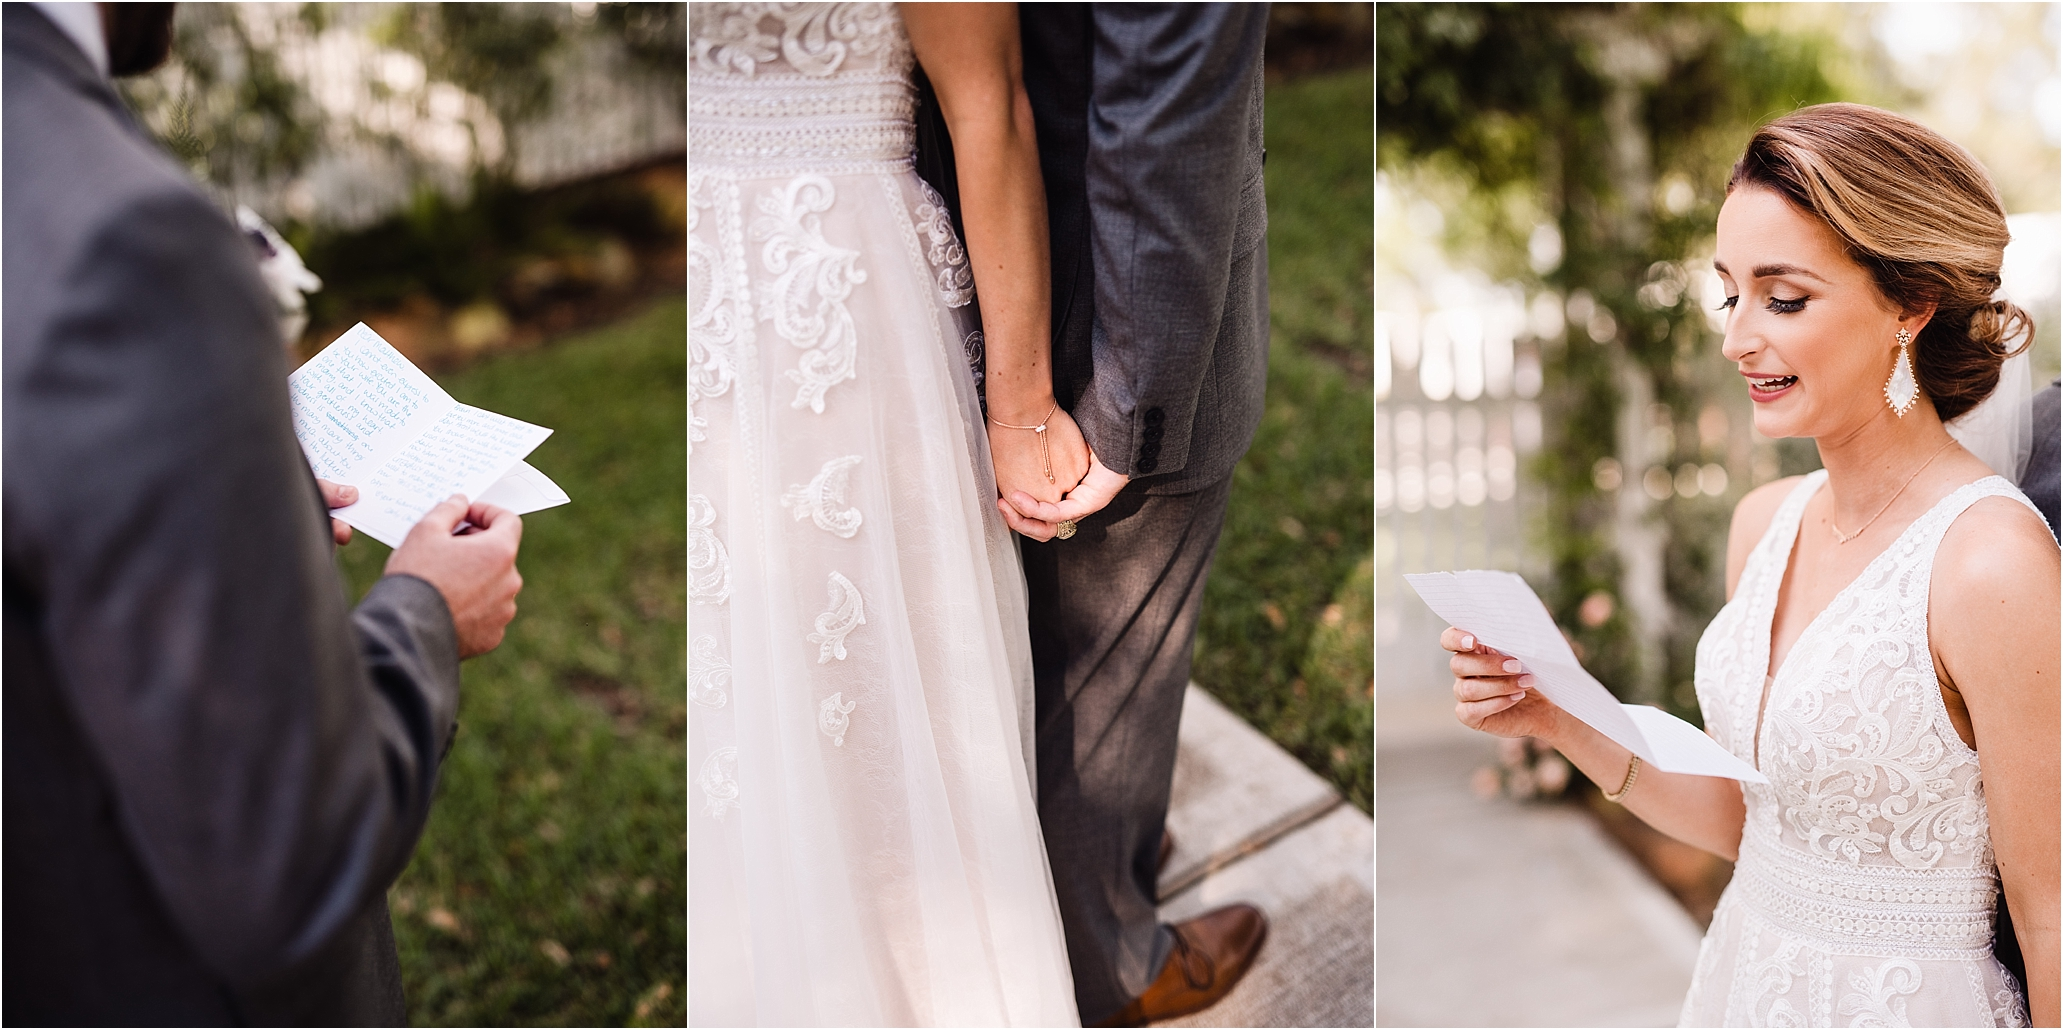 PattisonHouse_TexasWeddingPhotographer_CarlyCrockett&MattBrownWedding_0059.jpg